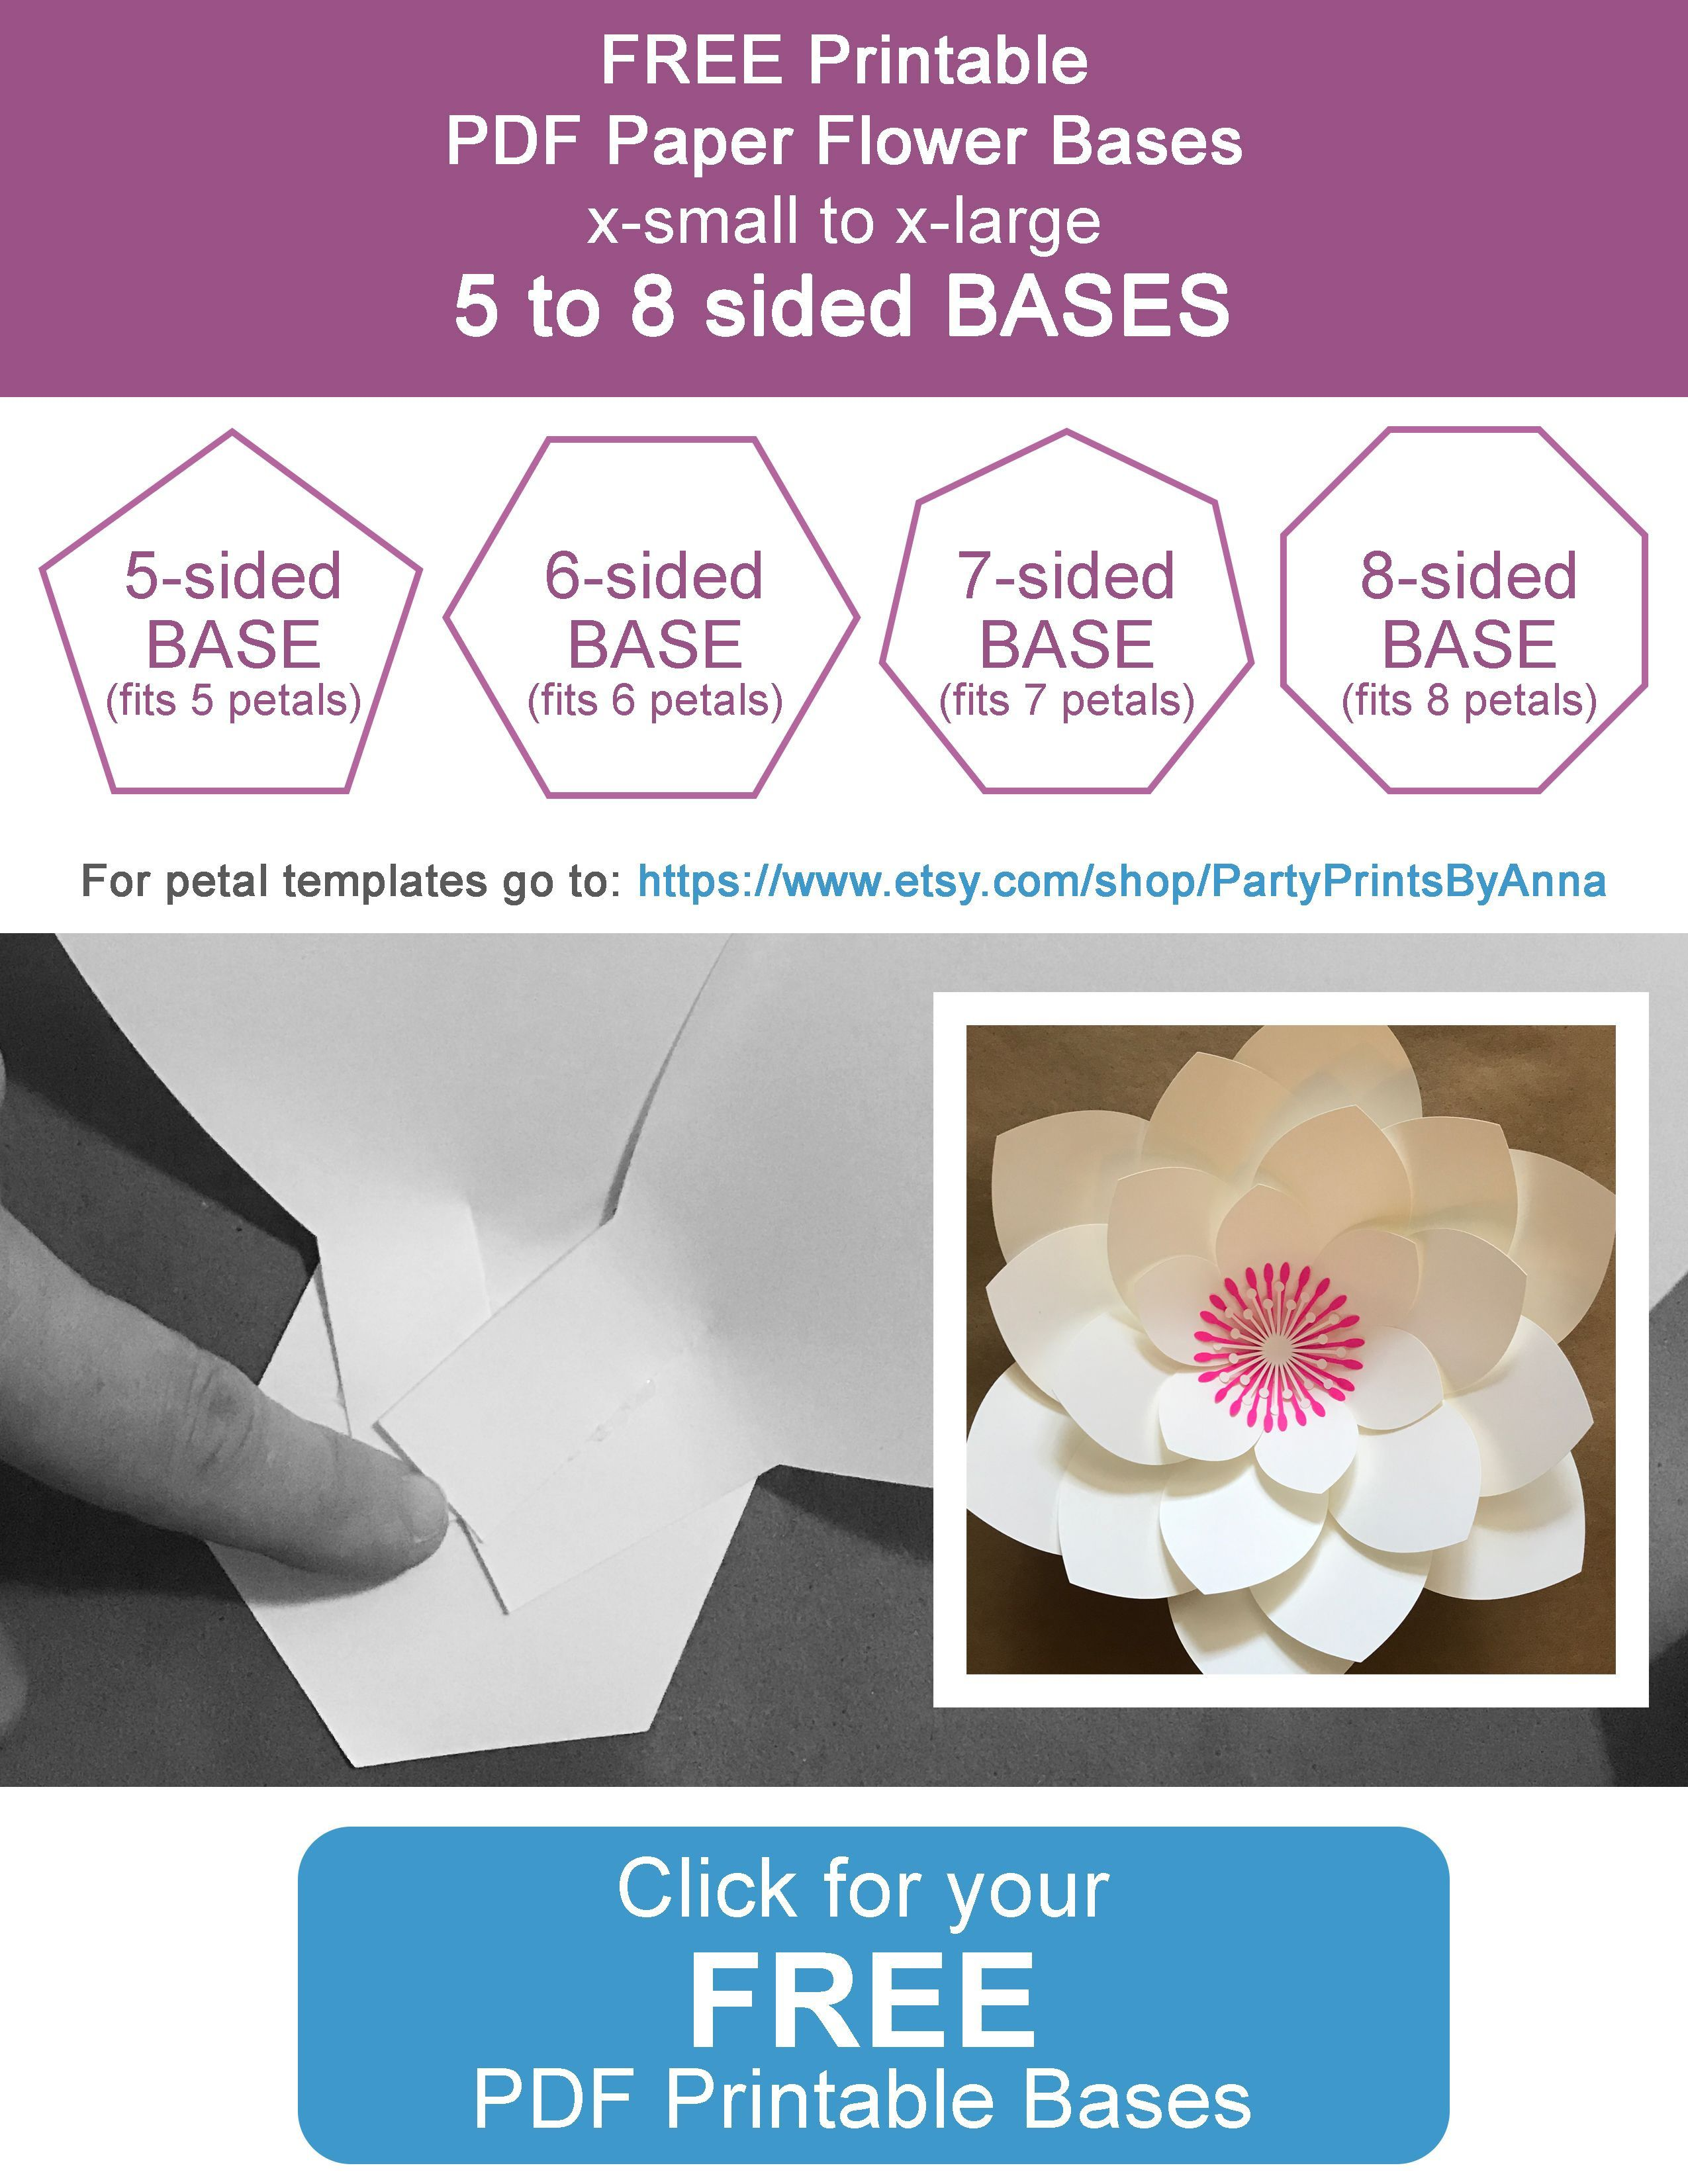 006 Exceptional Free Small Paper Flower Petal Template Sample  TemplatesFull